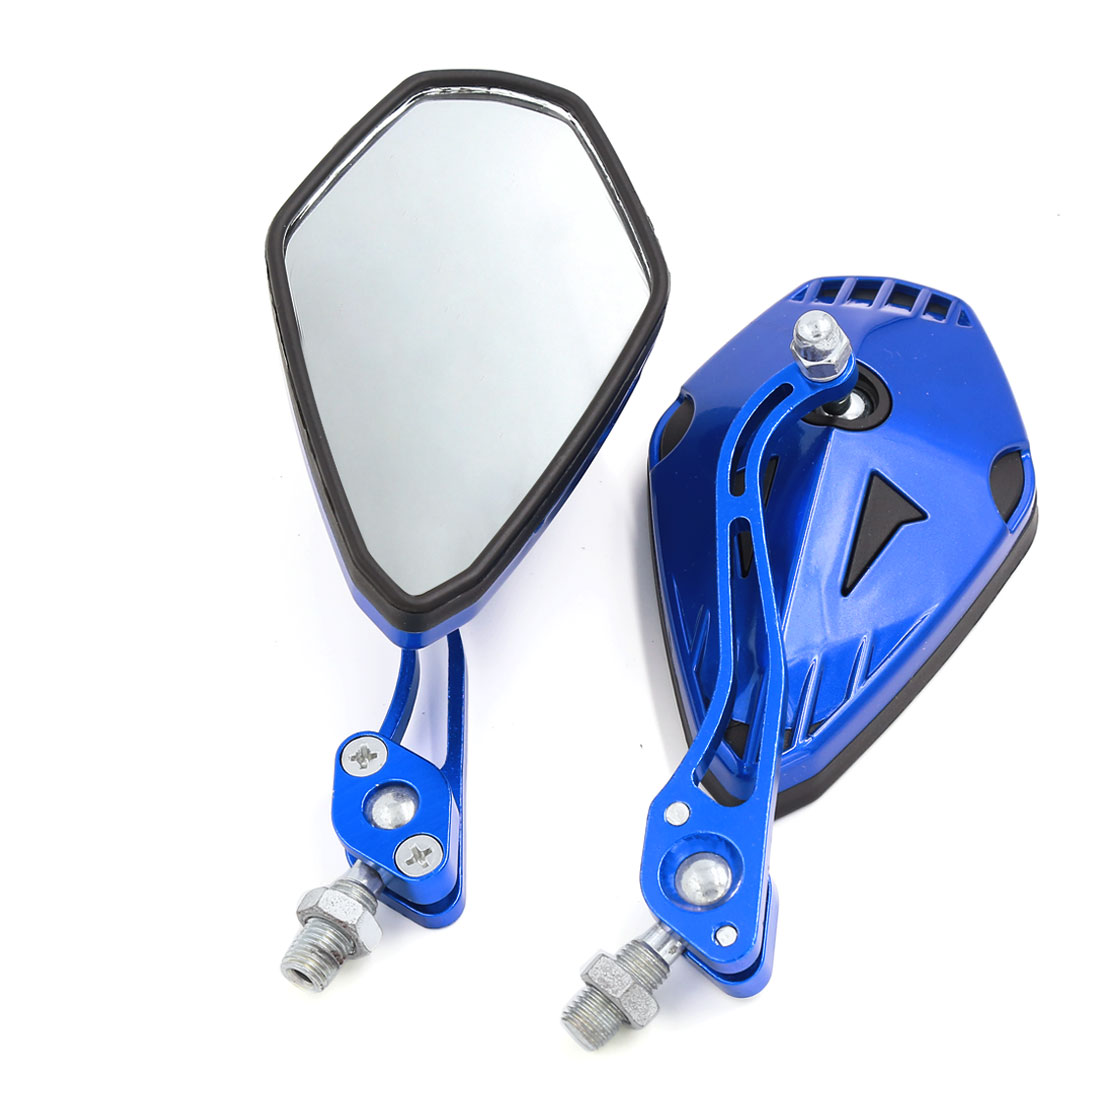 Blue Pentagon Shaped Adjustable Angle Motorcycle Side Rearview Mirrors 10mm Thread 2pcs